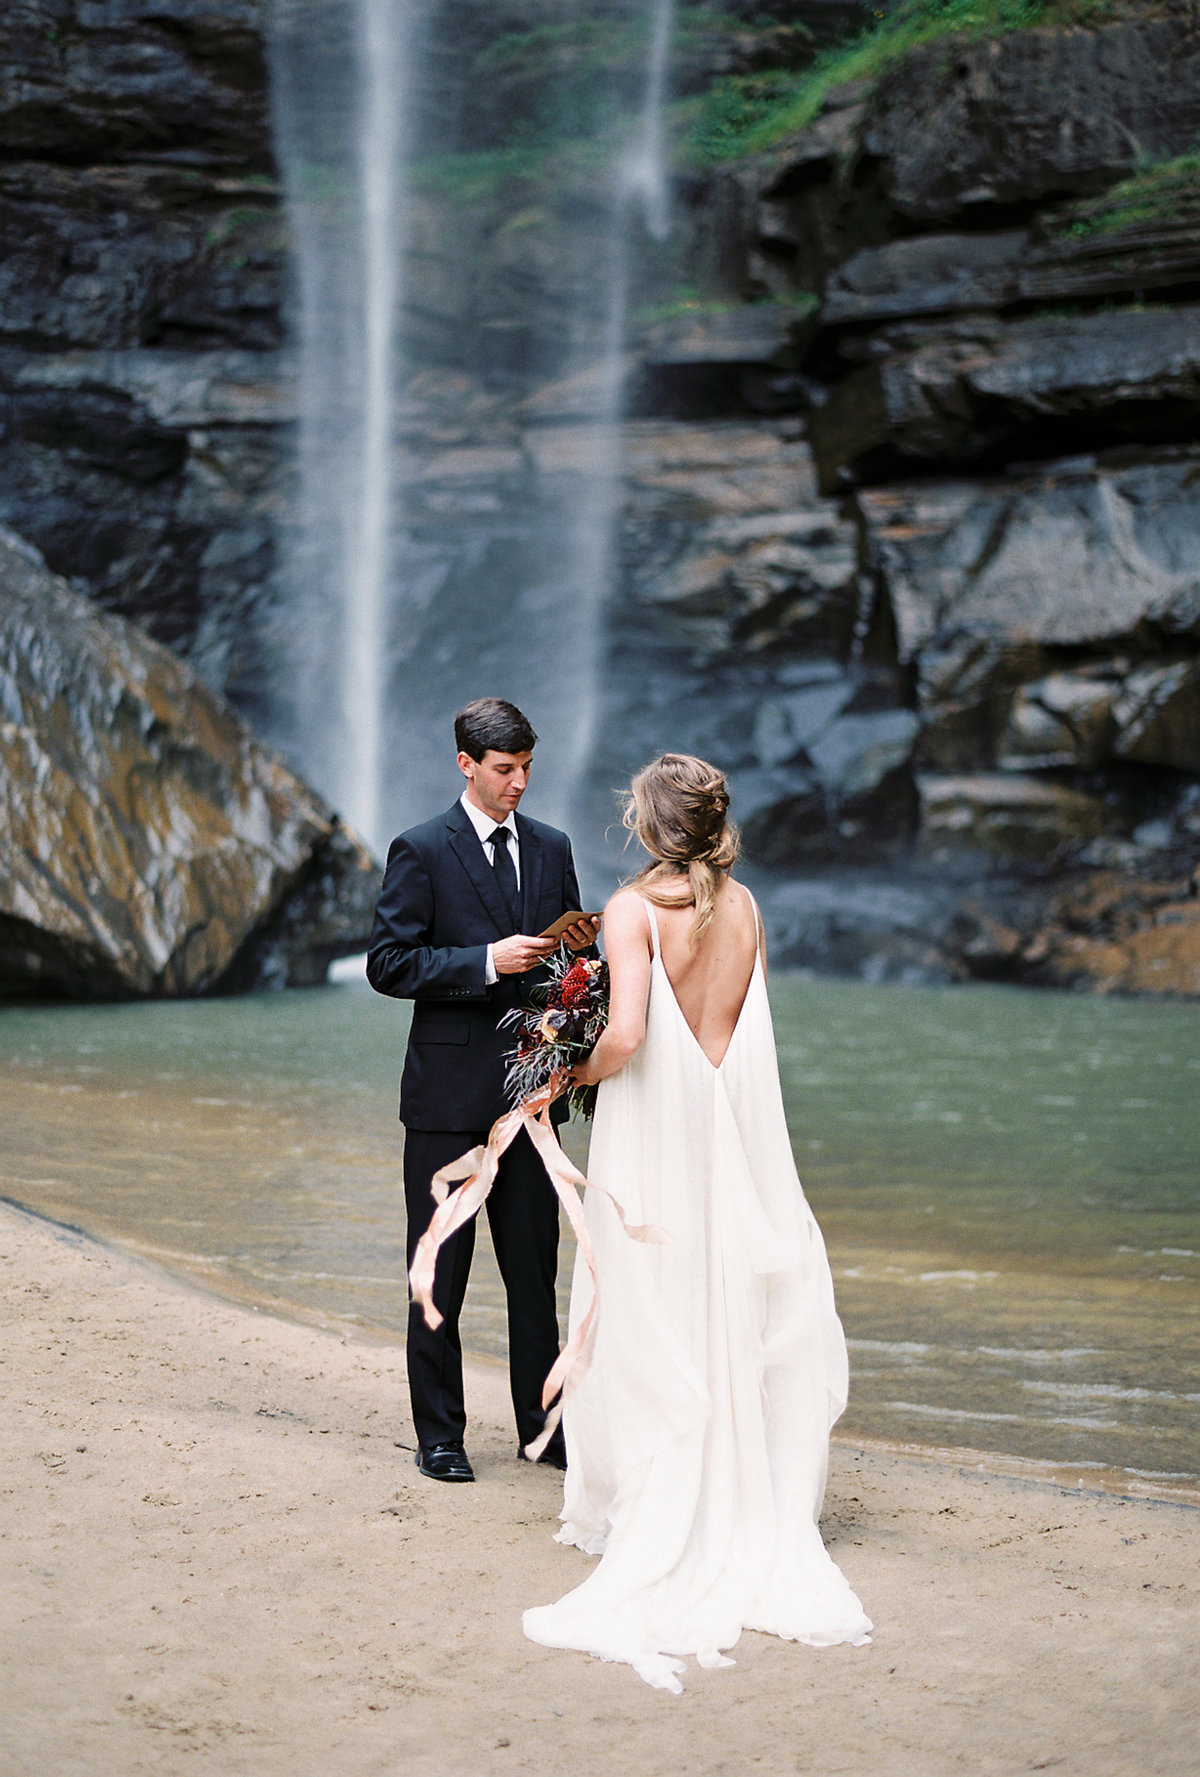 toccoa-falls-anniversary-session-melanie-gabrielle-photography-054